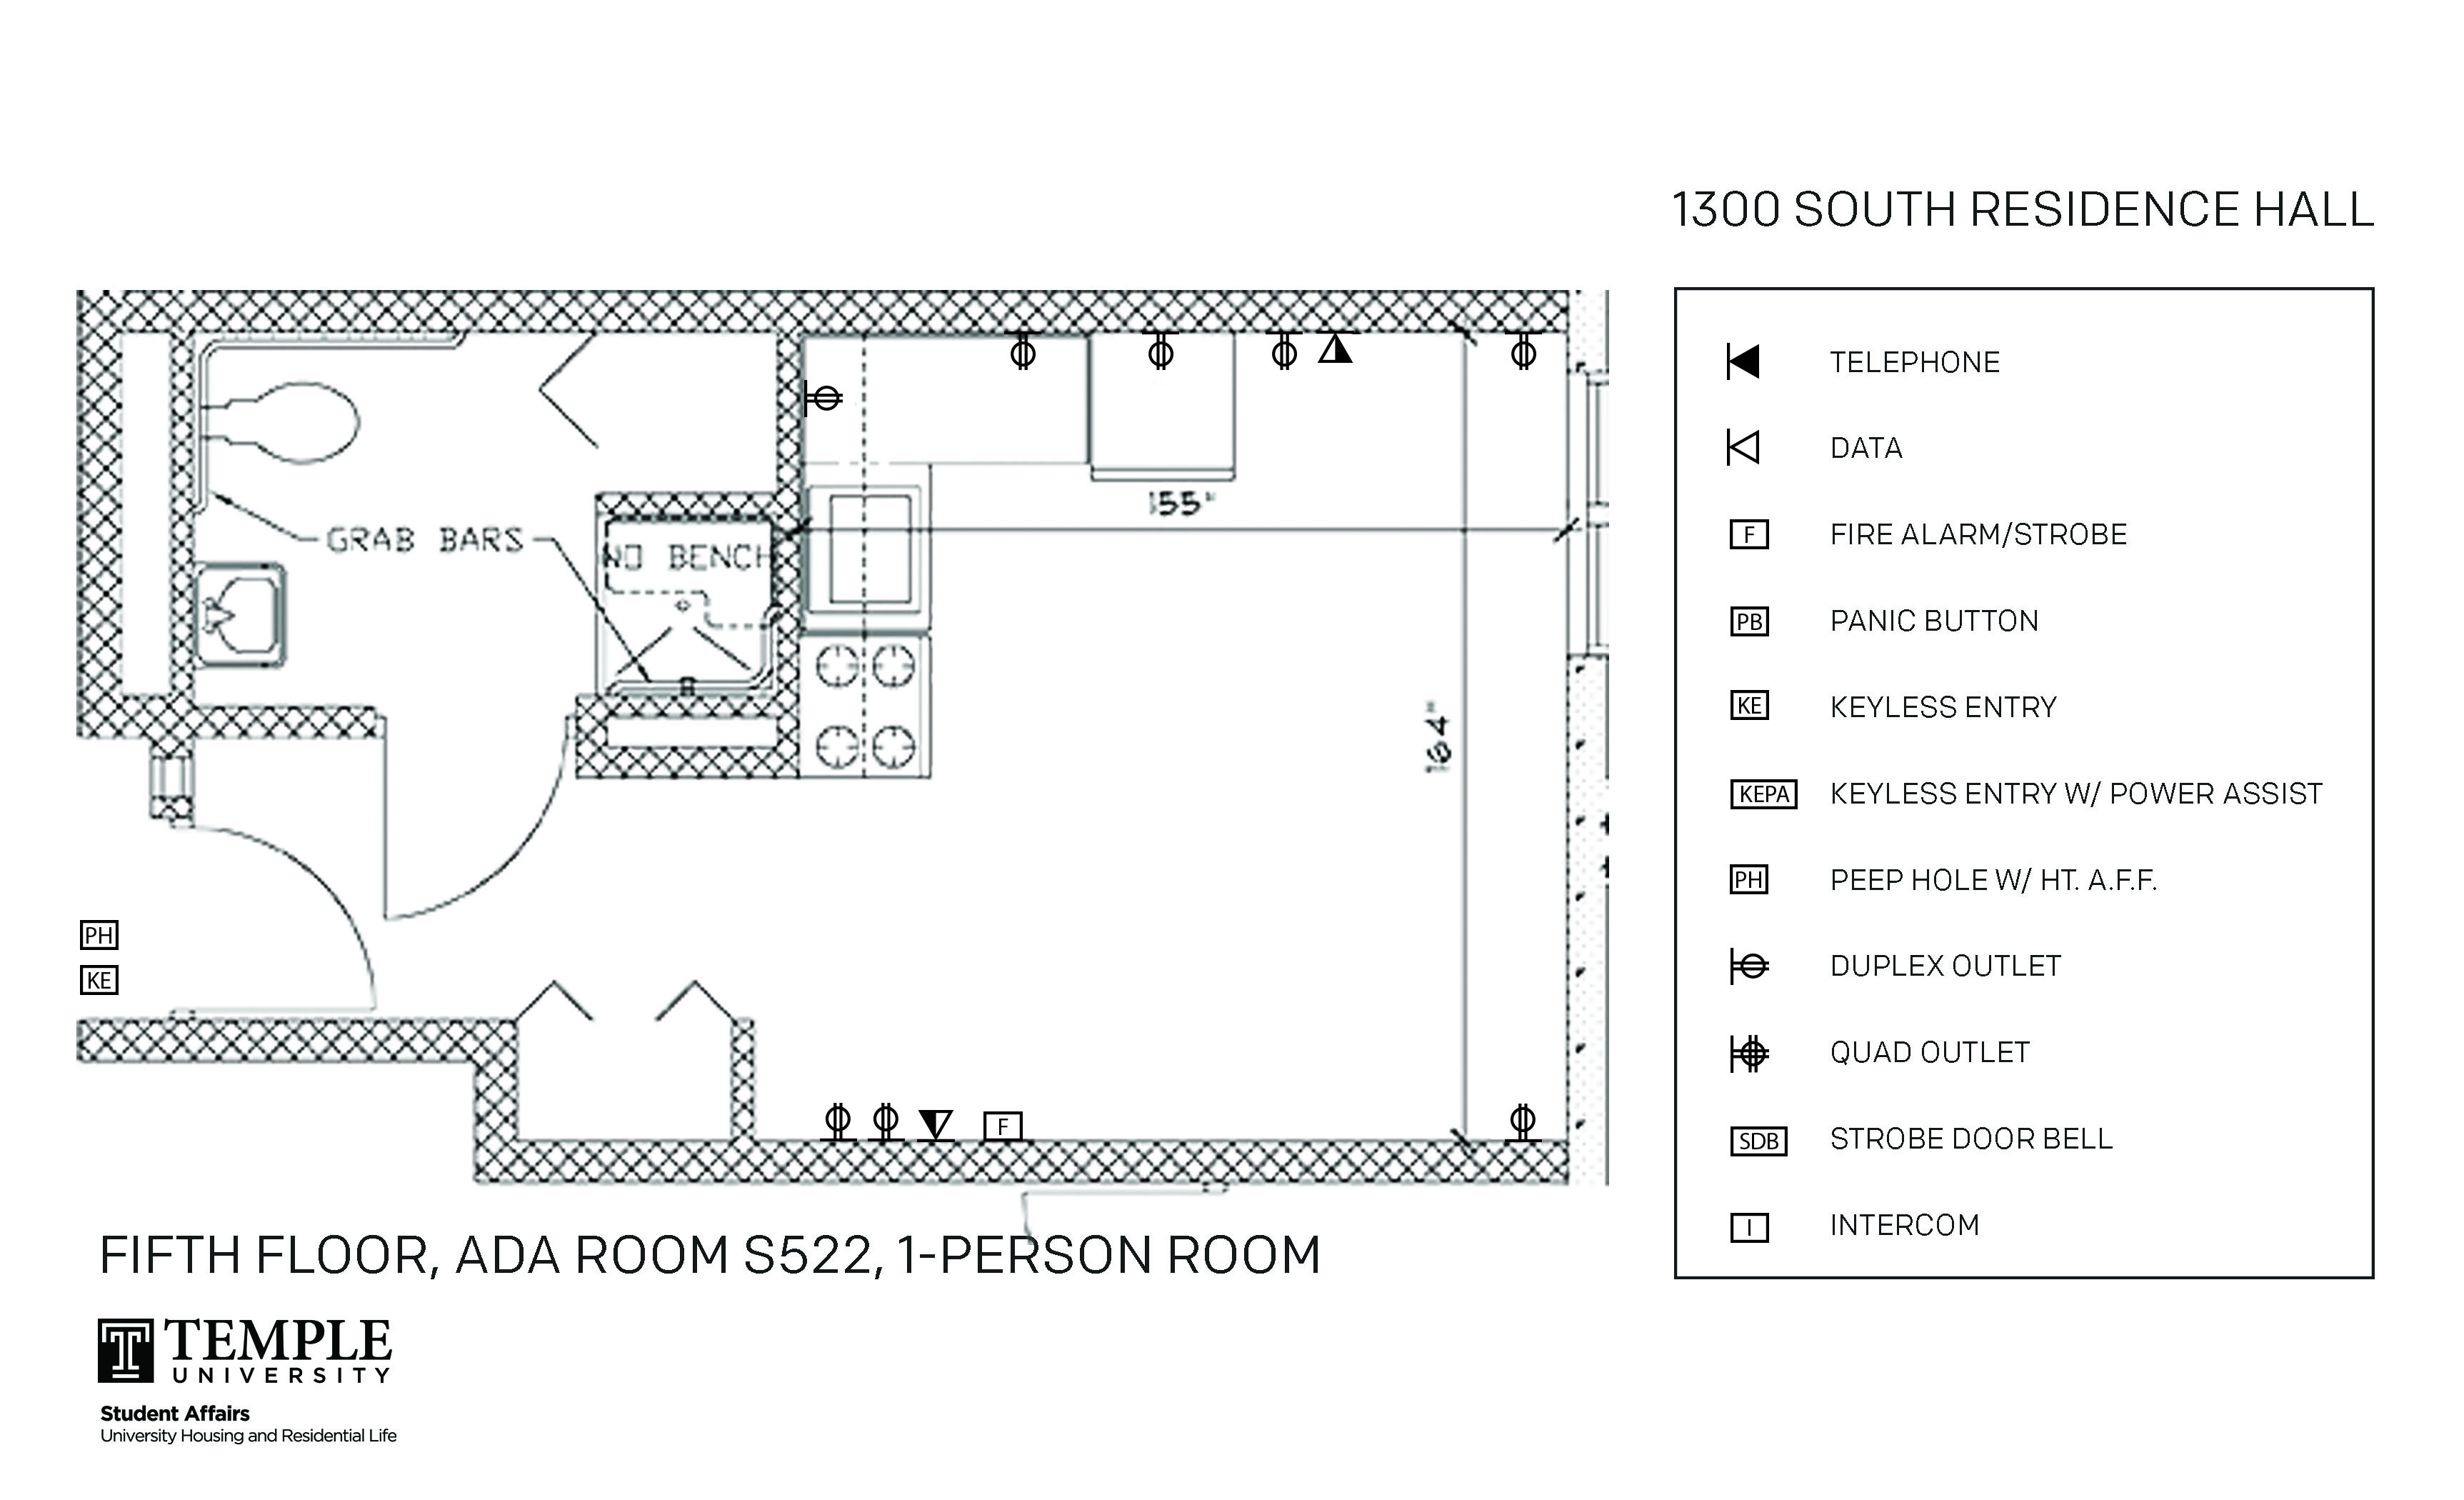 Accessible Room Diagrams: 5th Floor Room S522